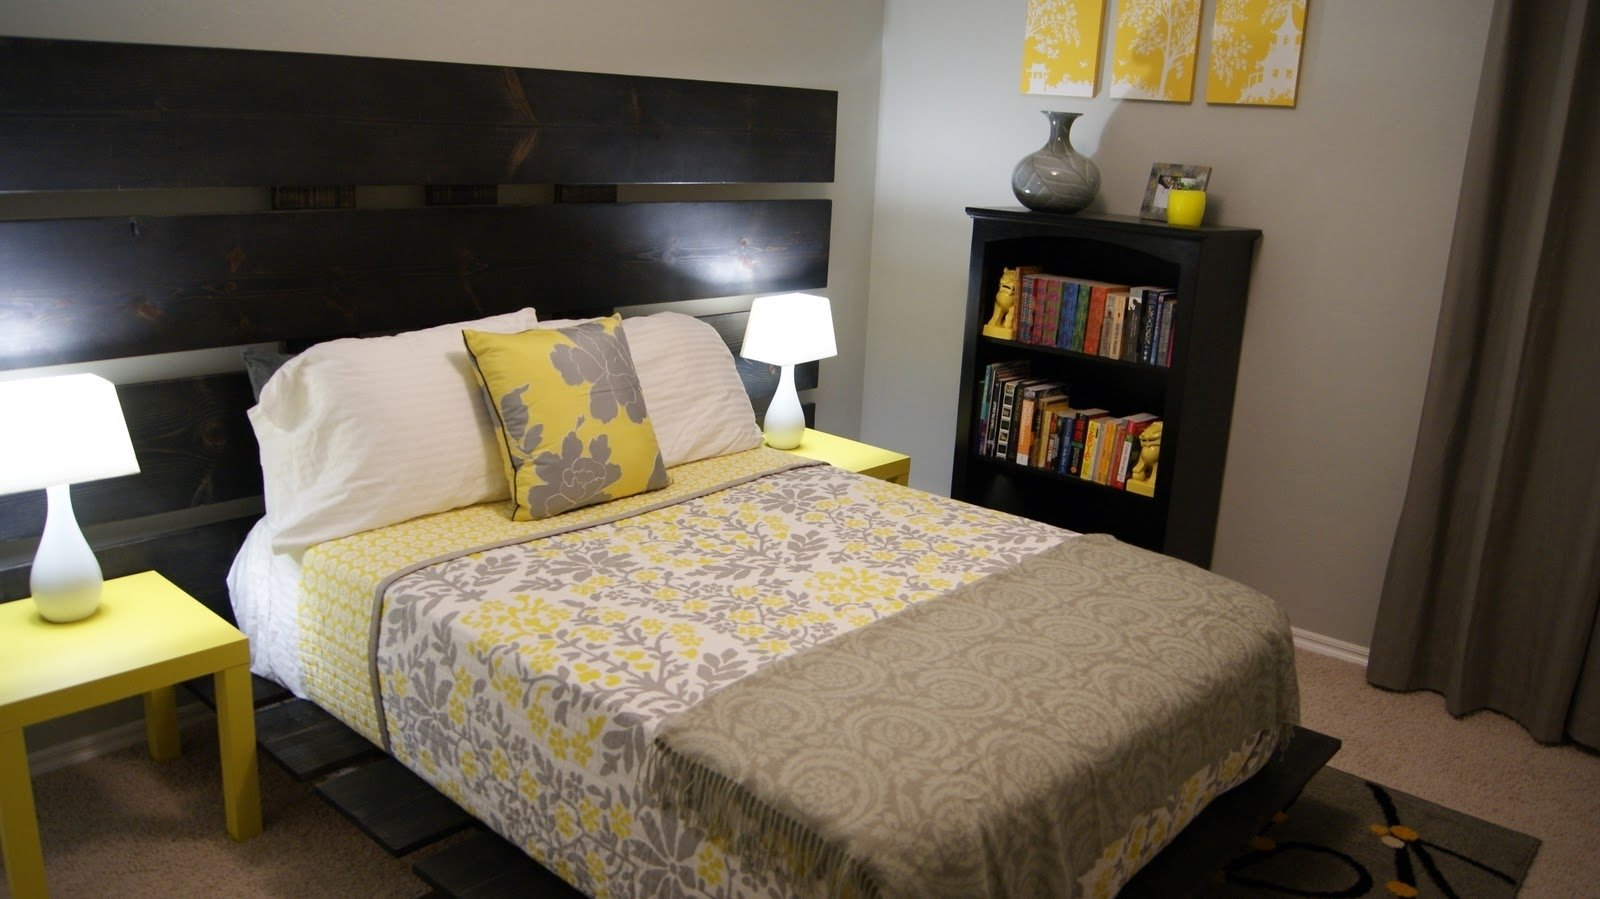 10 Attractive Yellow And Gray Bedroom Ideas yellow and gray bedroom ideas deboto home design ikea gray 2020